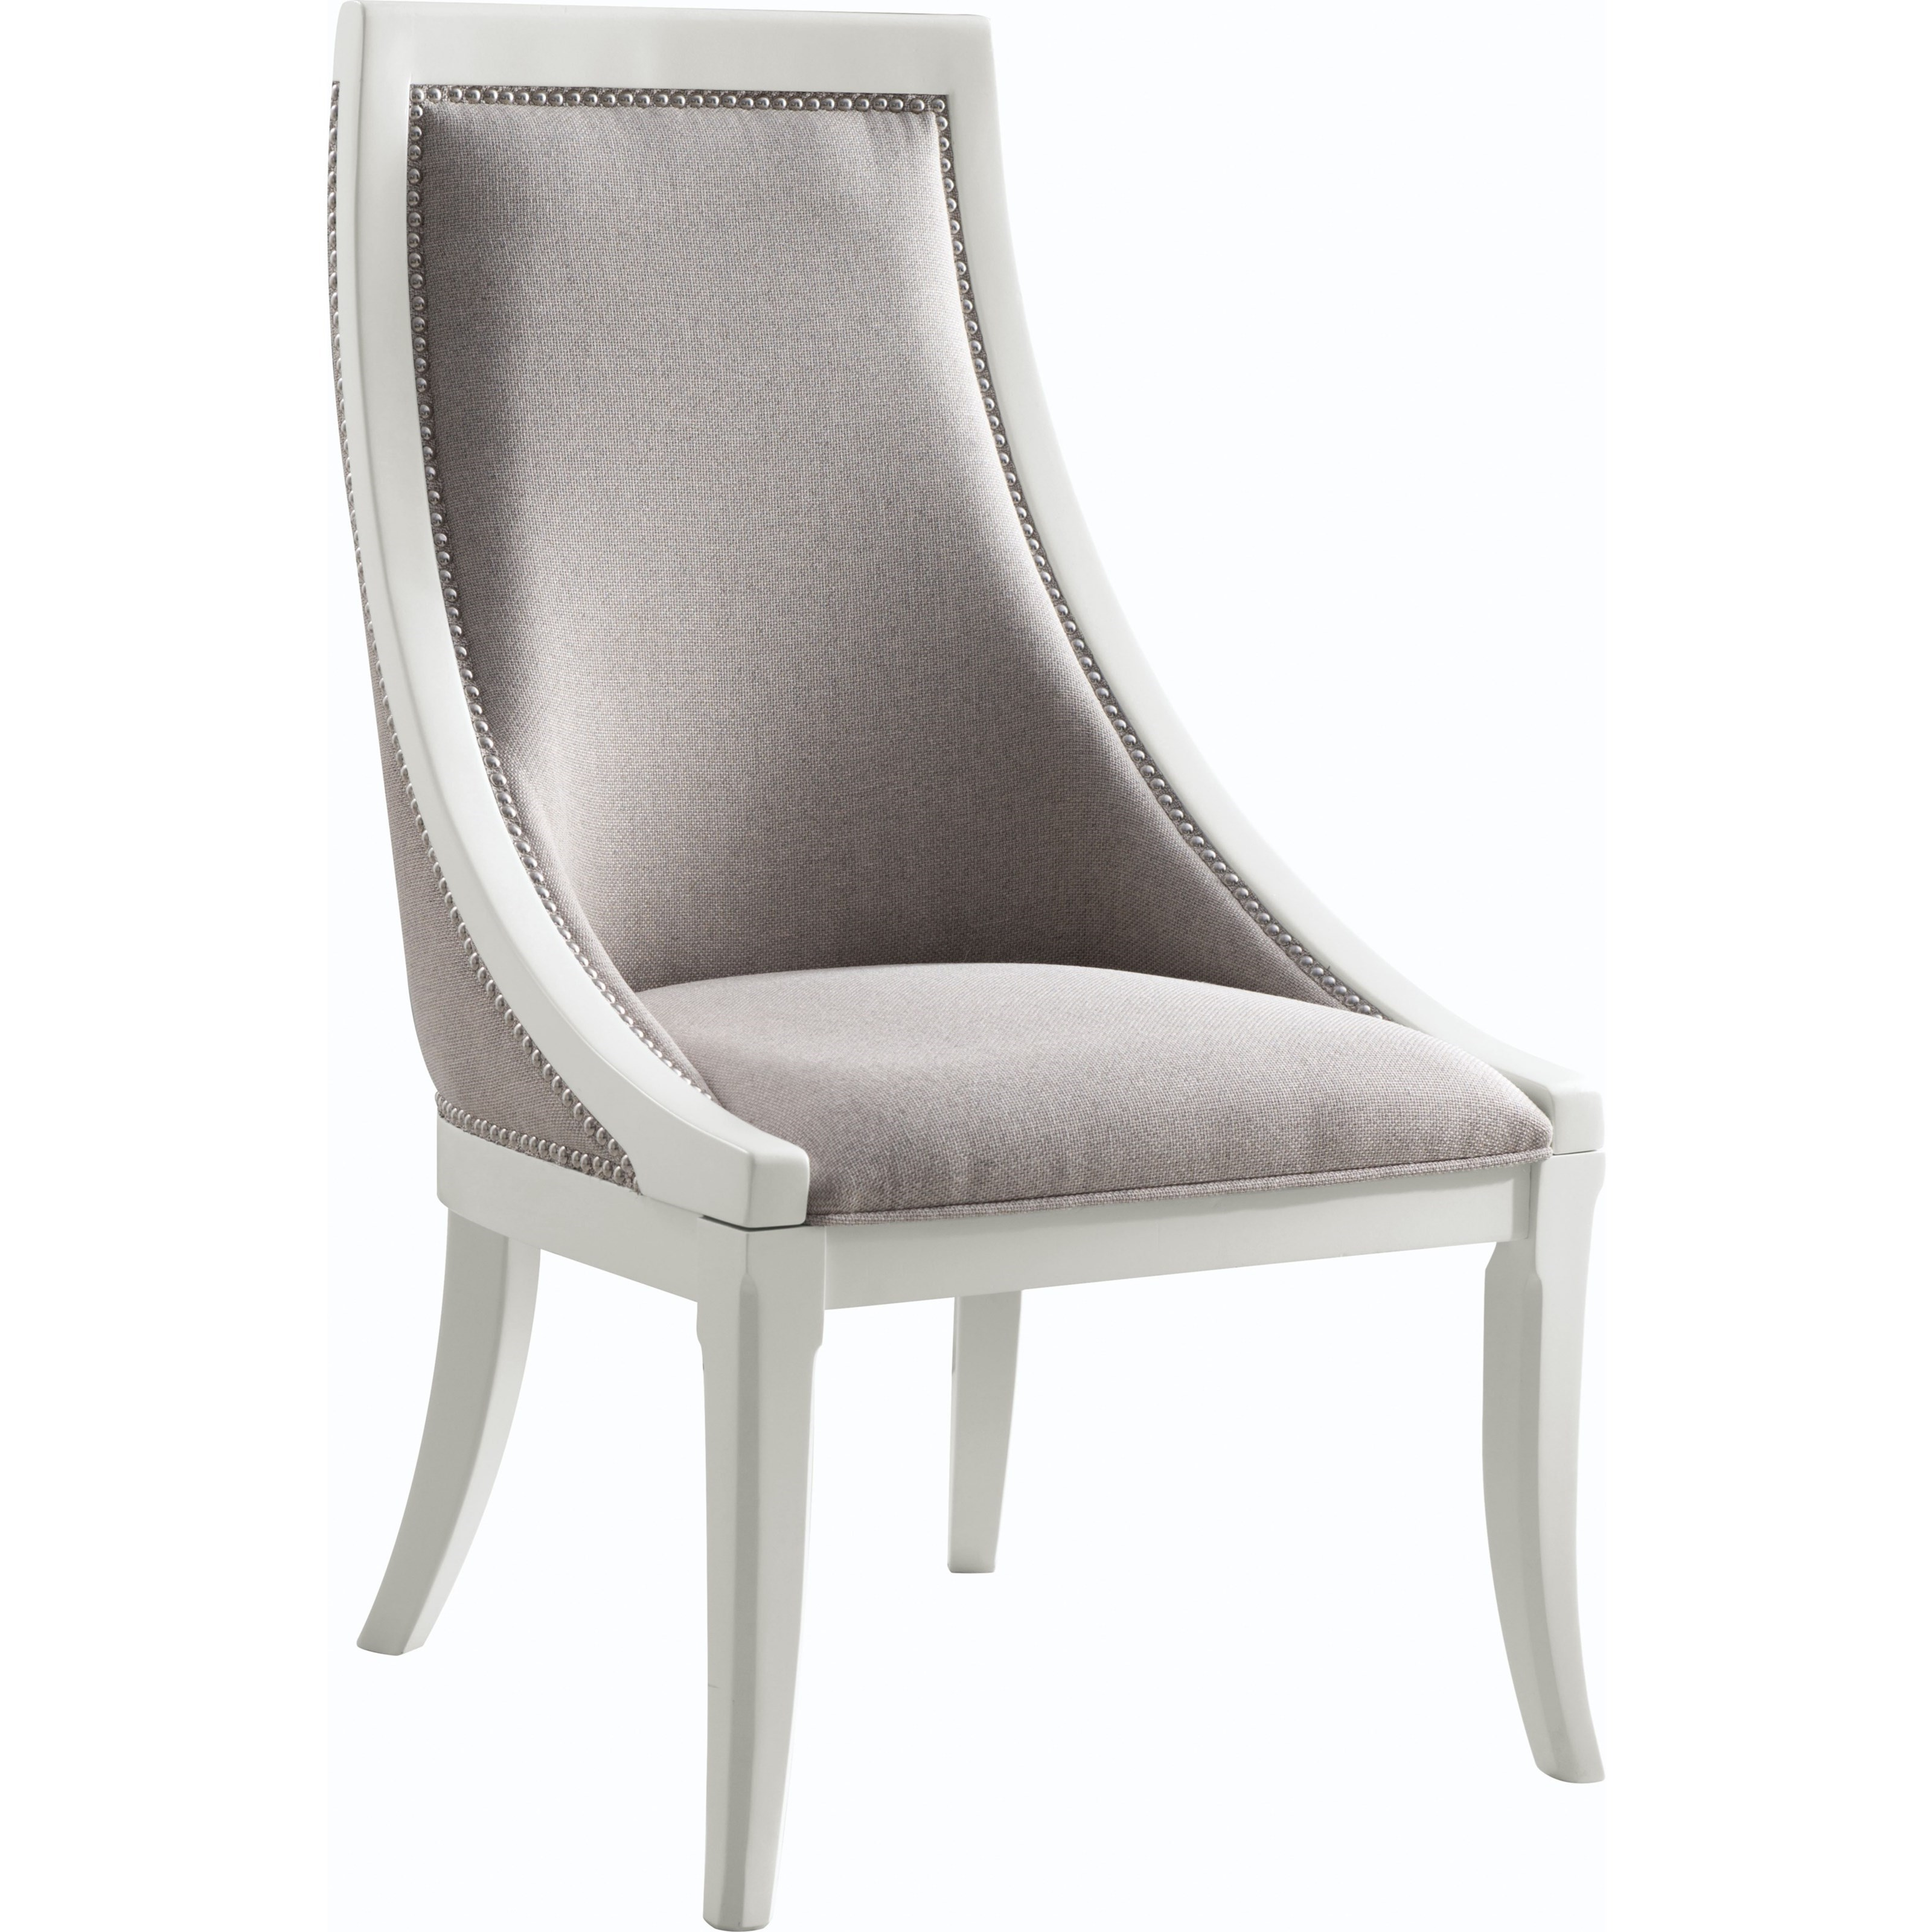 Thomasville® Manuscript Upholstered Dining Side Chair - Item Number: 82925-881